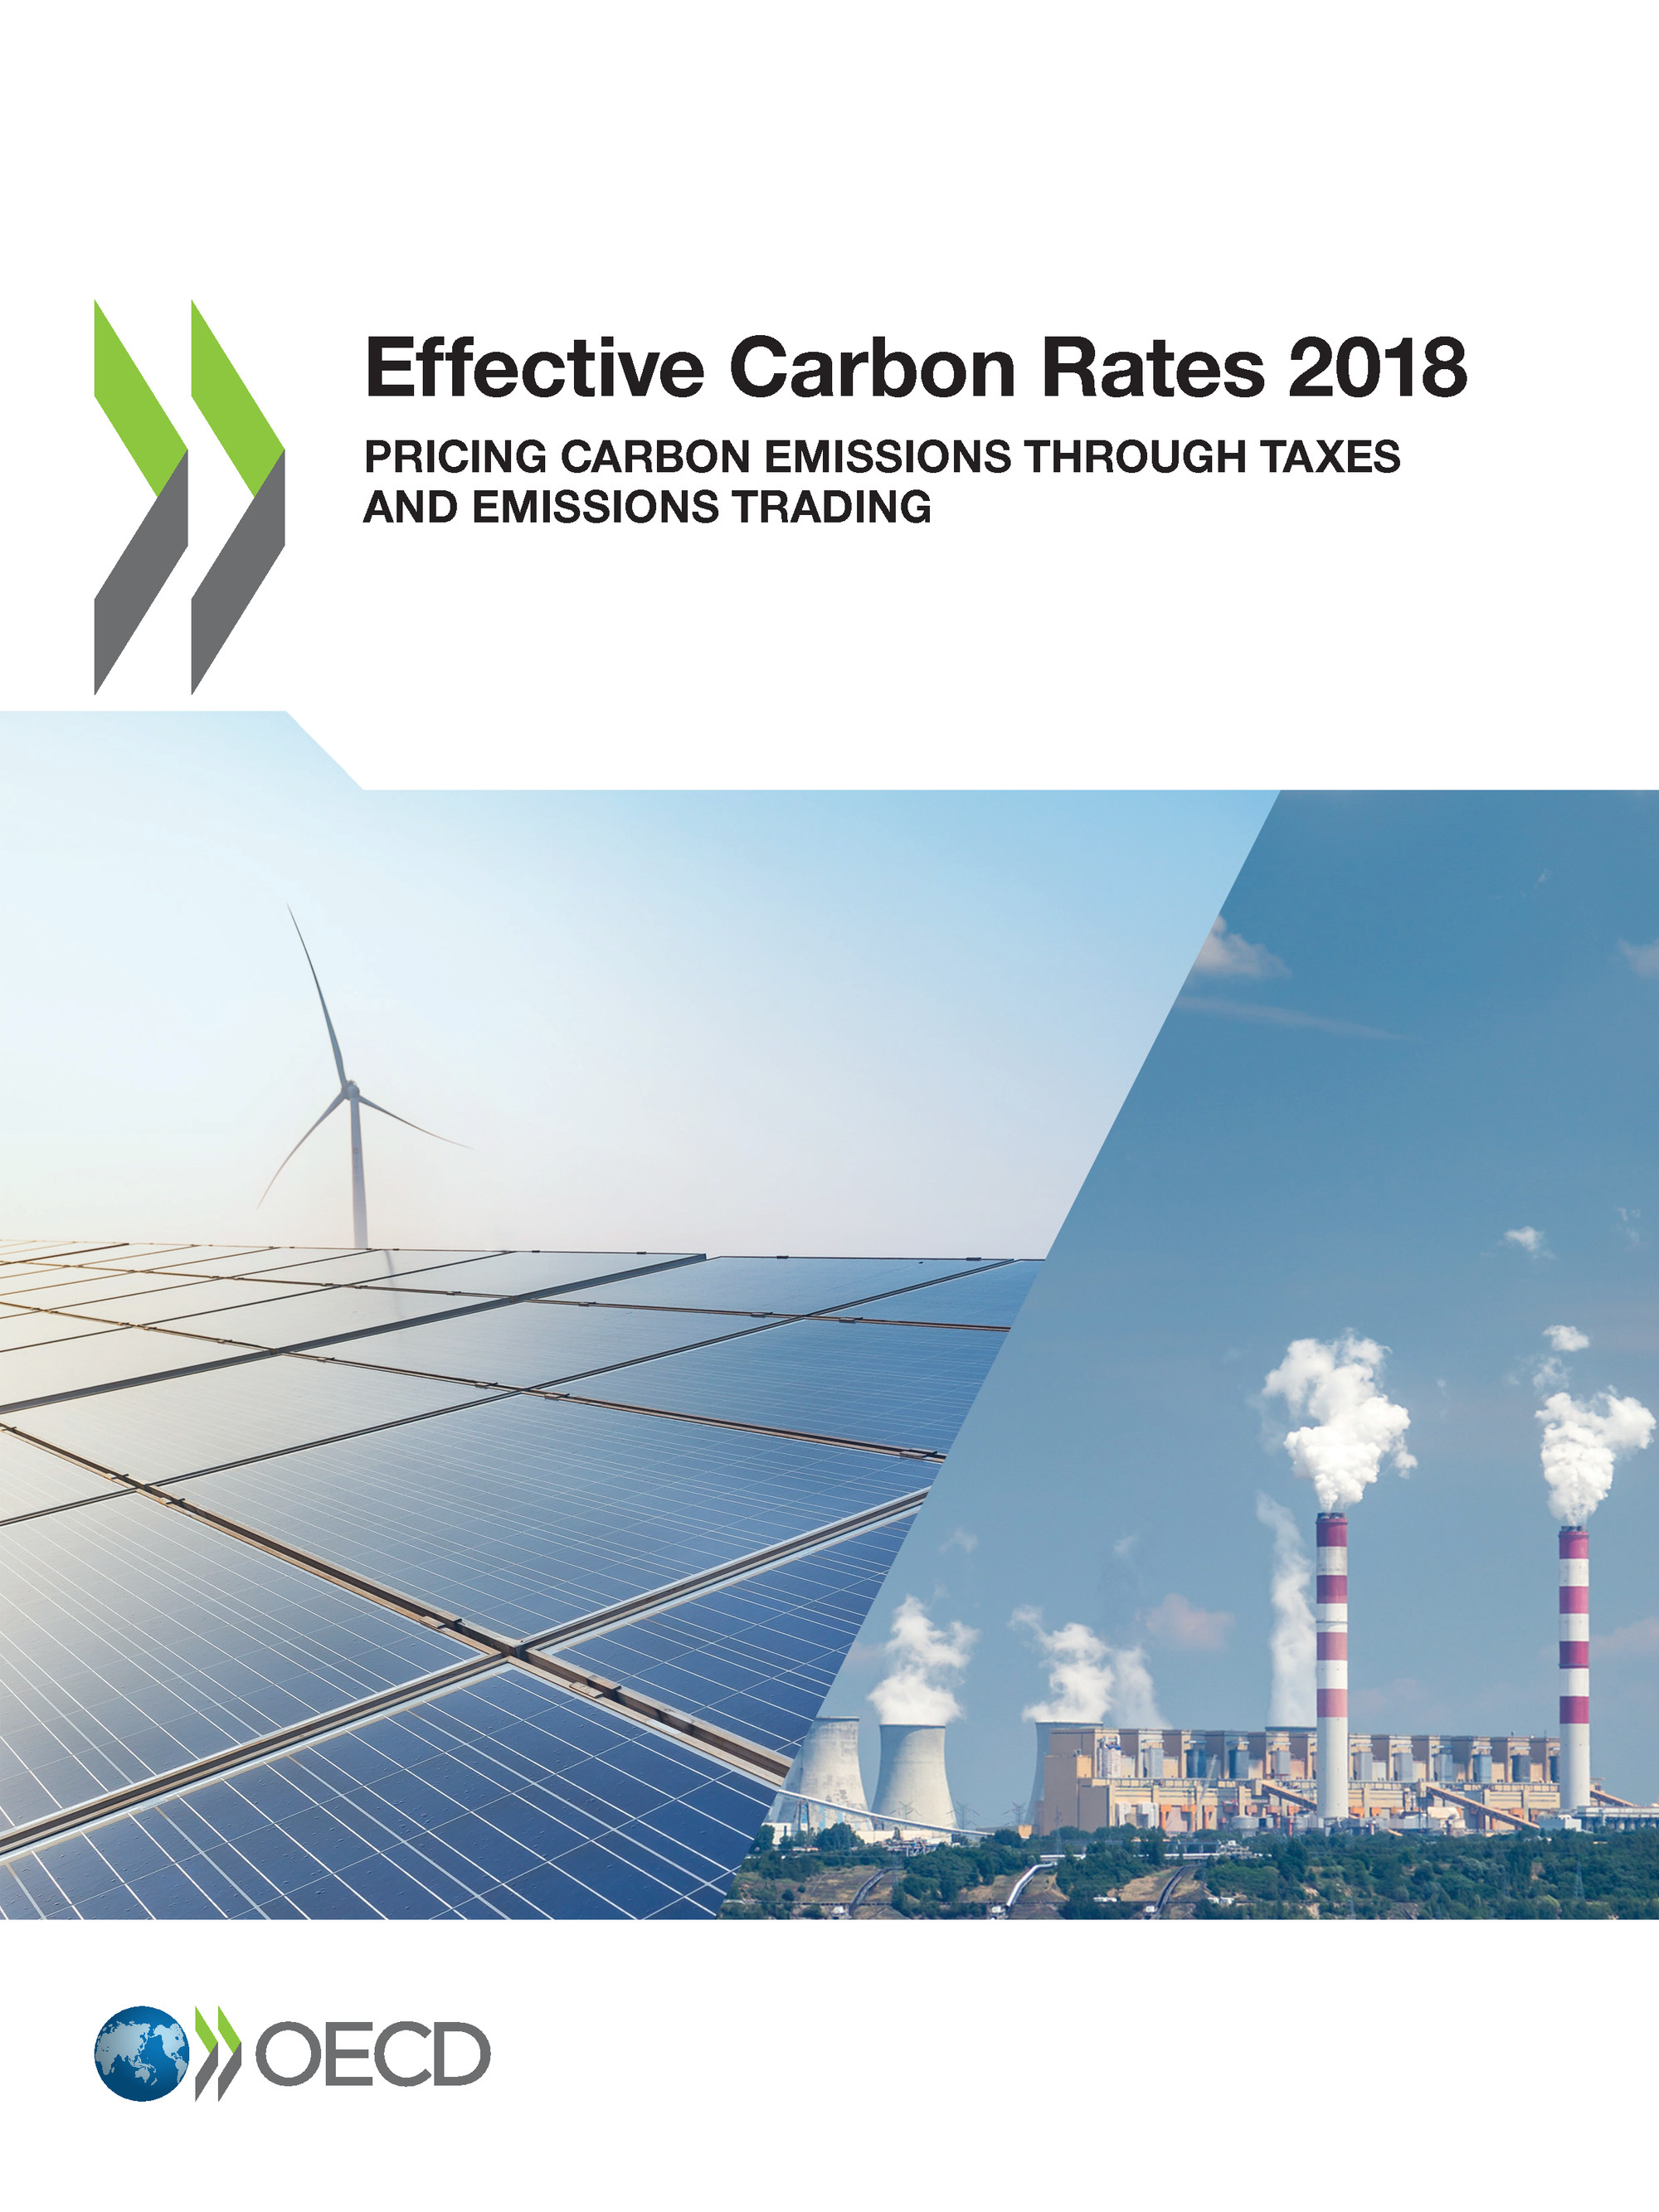 Effective Carbon Rates 2018 De  Collectif - OCDE / OECD